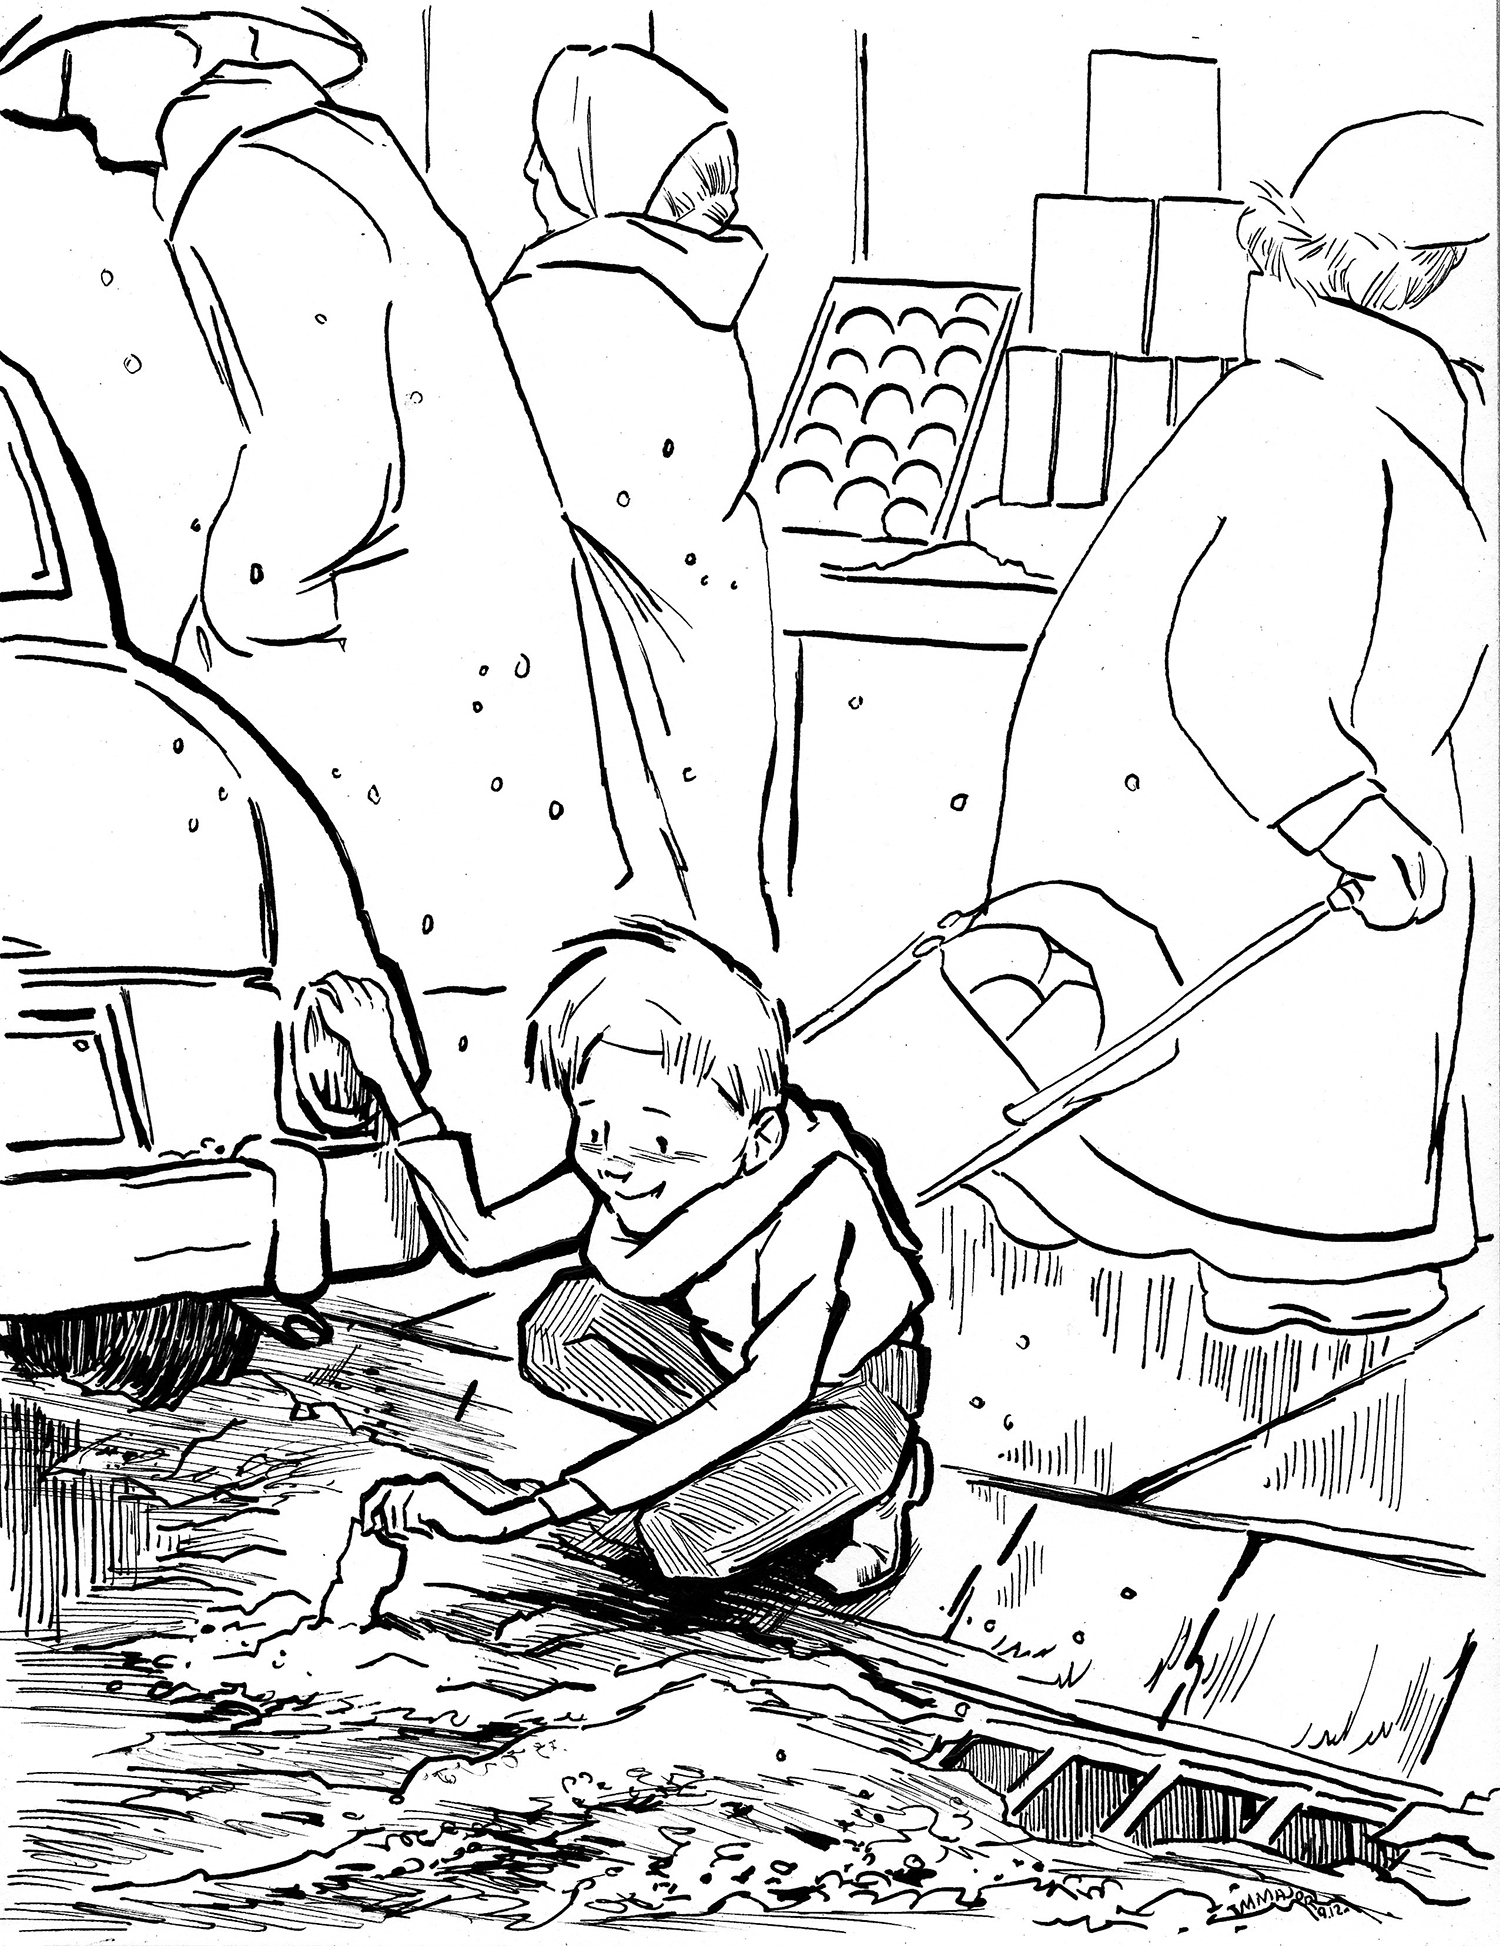 Charlie Bucket, from Charlie & the Chocolate Factory, Personal Piece